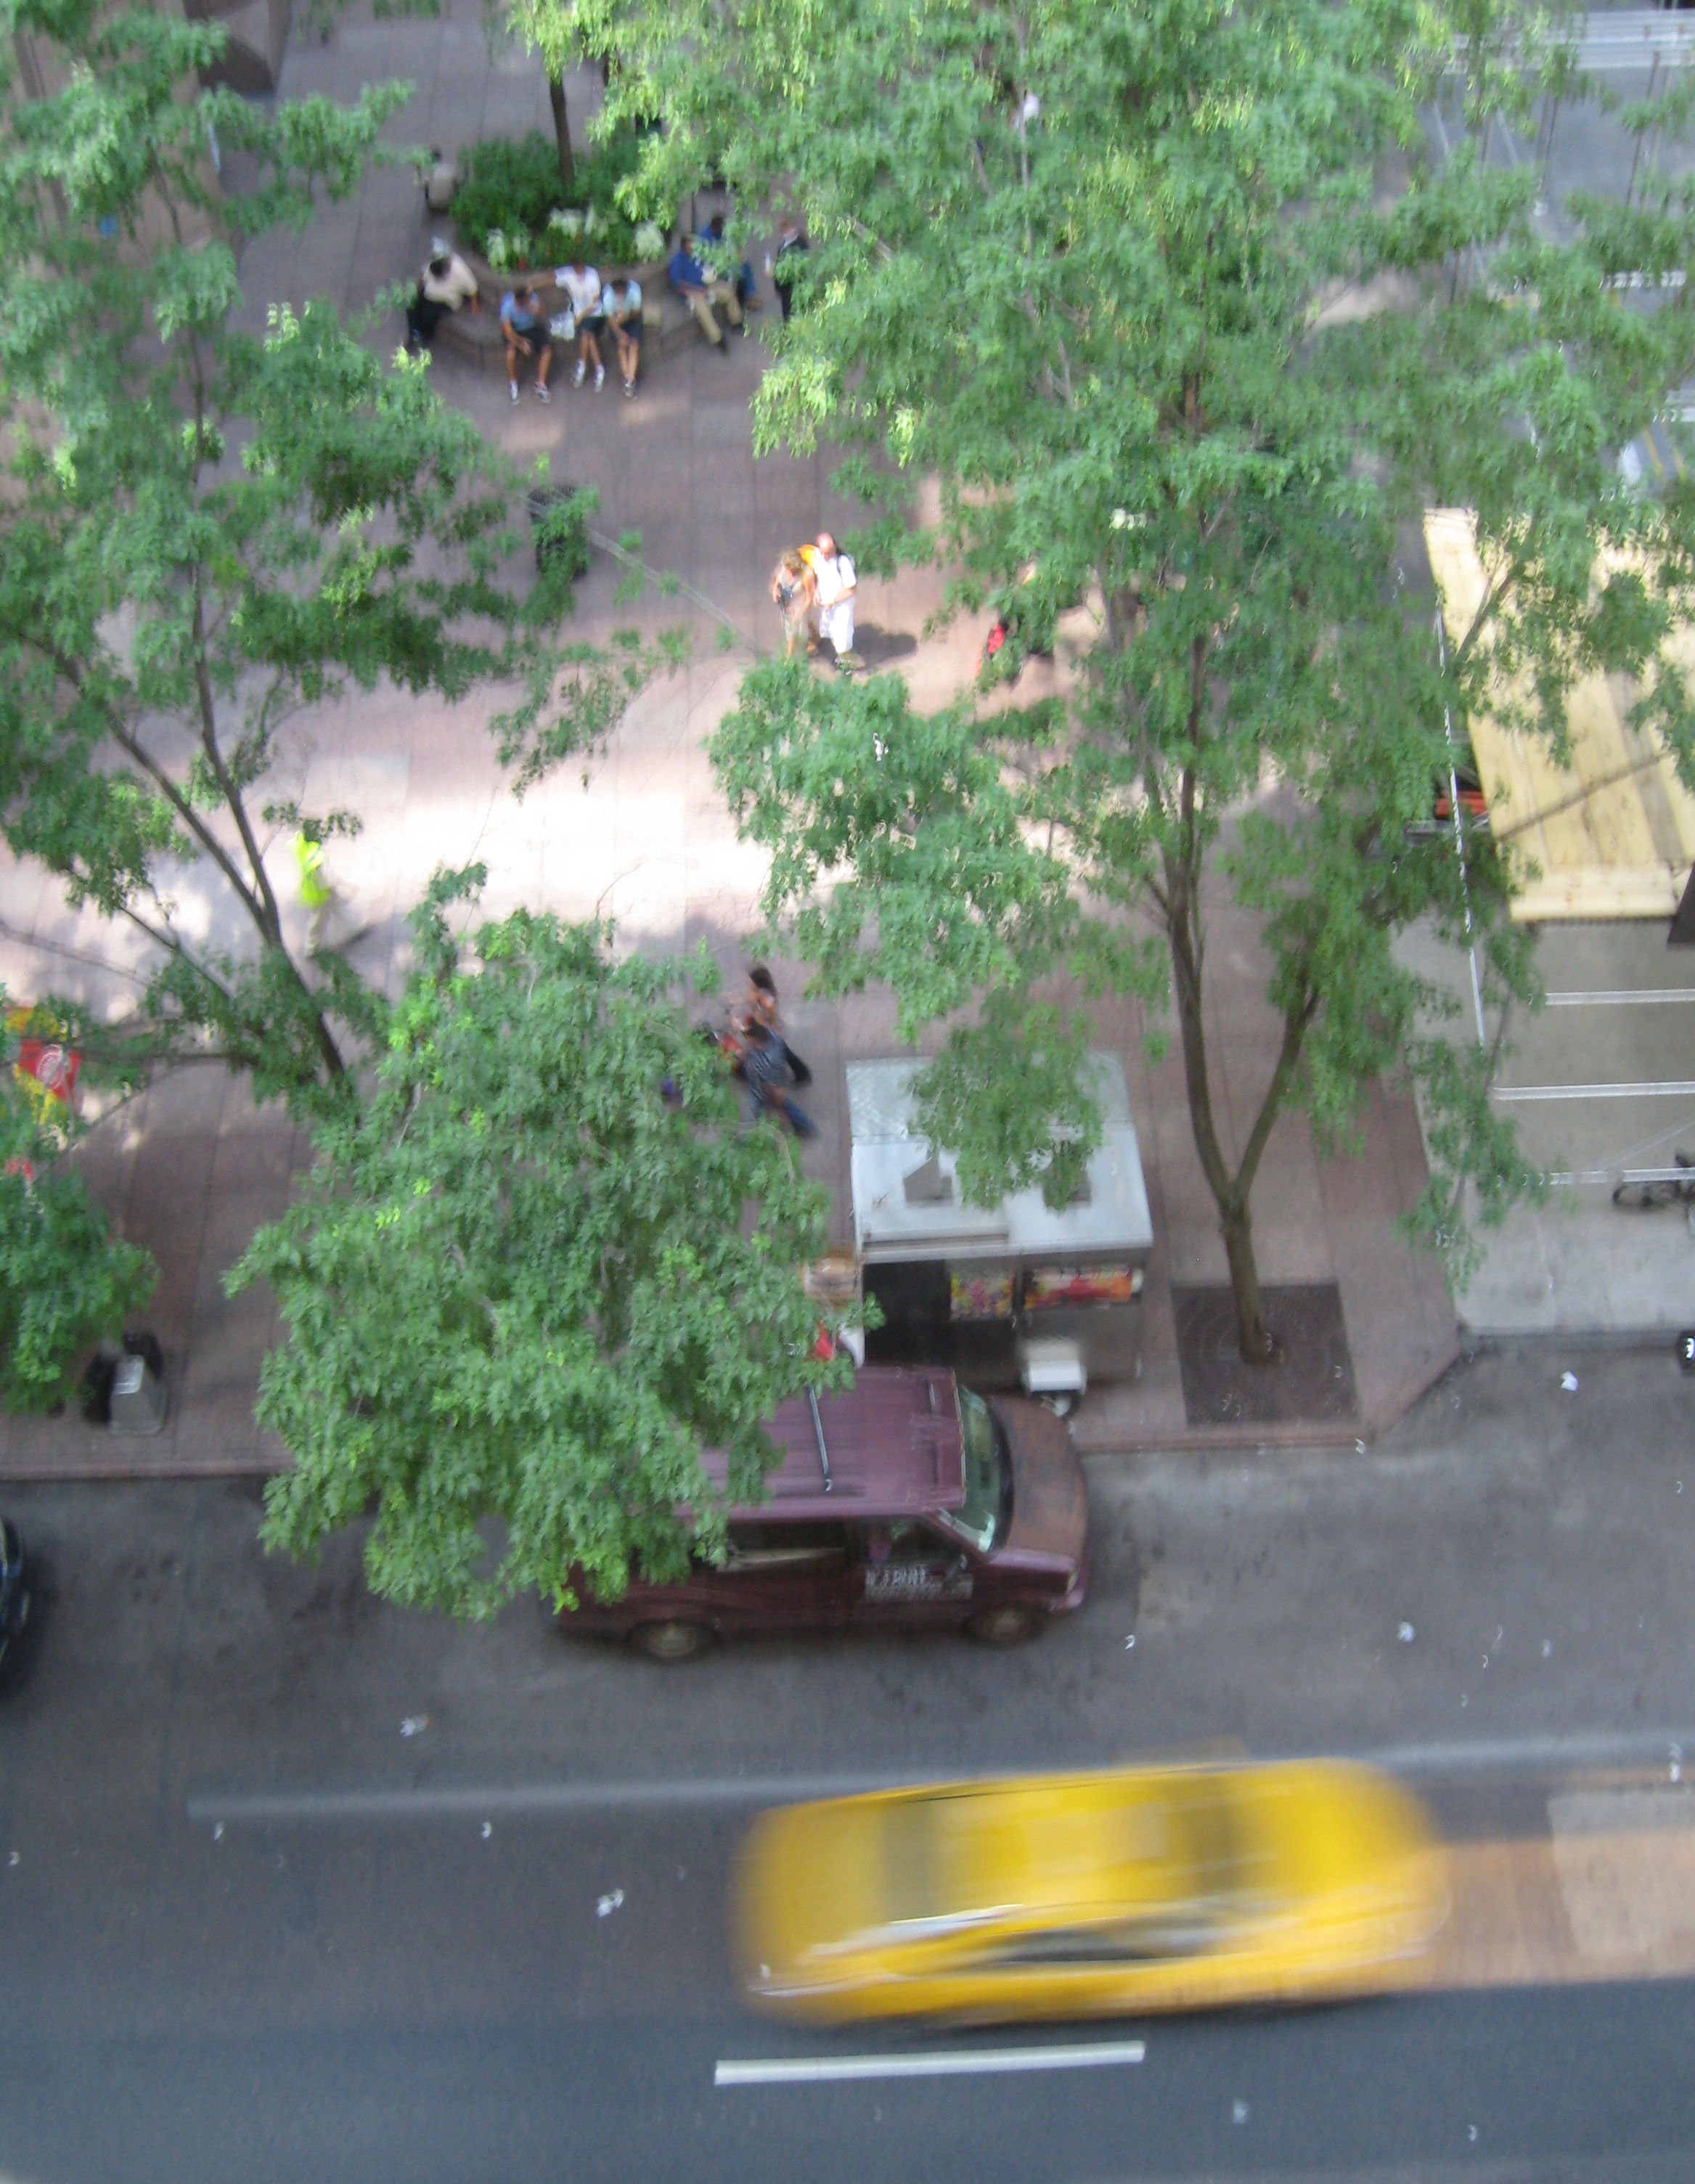 From the window of MOMA. Photo by me